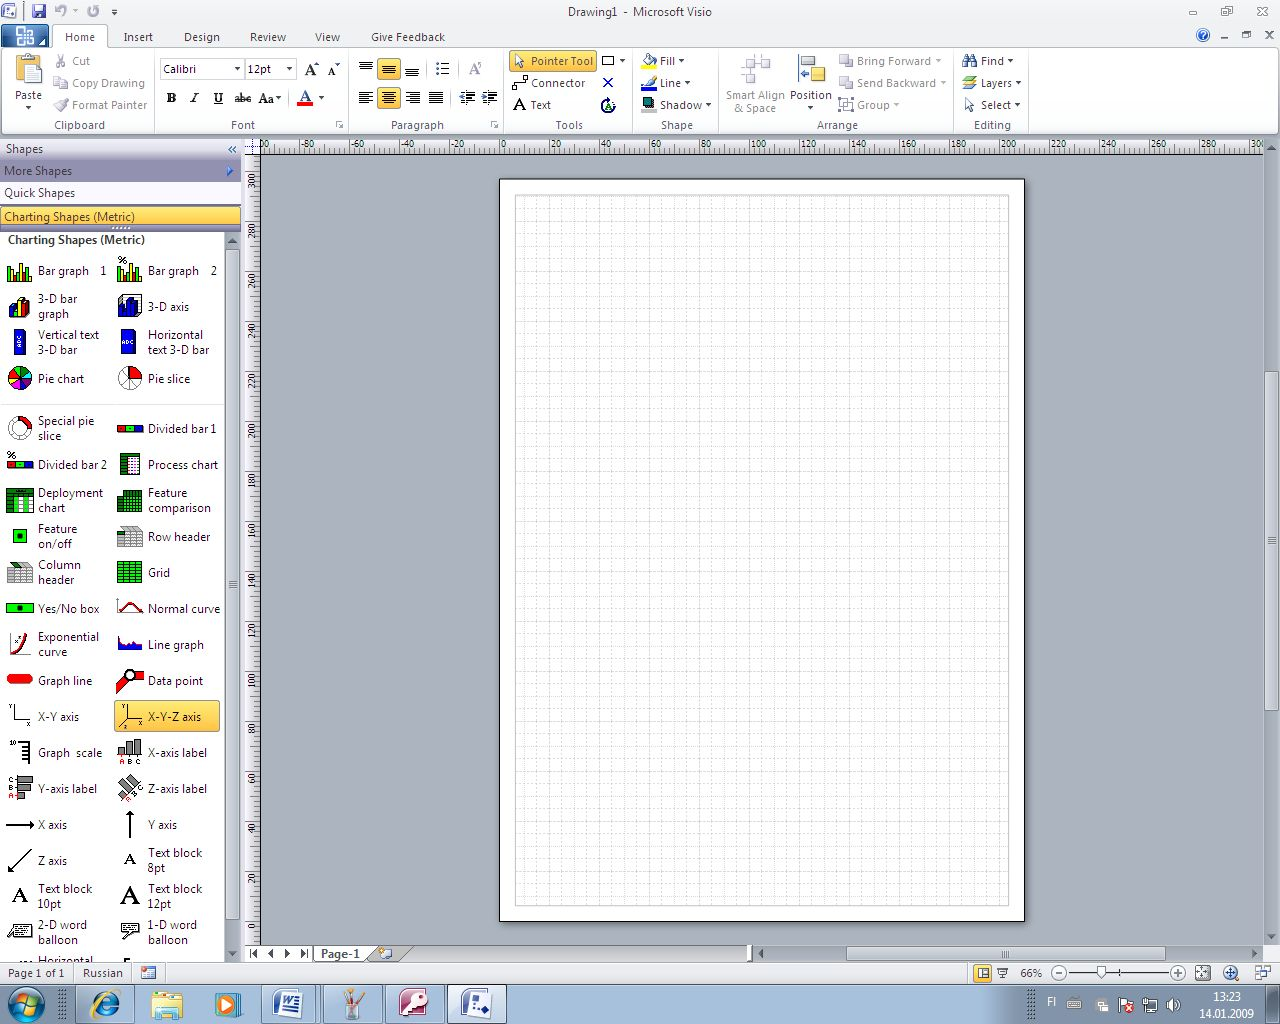 B office word 2010 excel 2010 access 2010 visio b